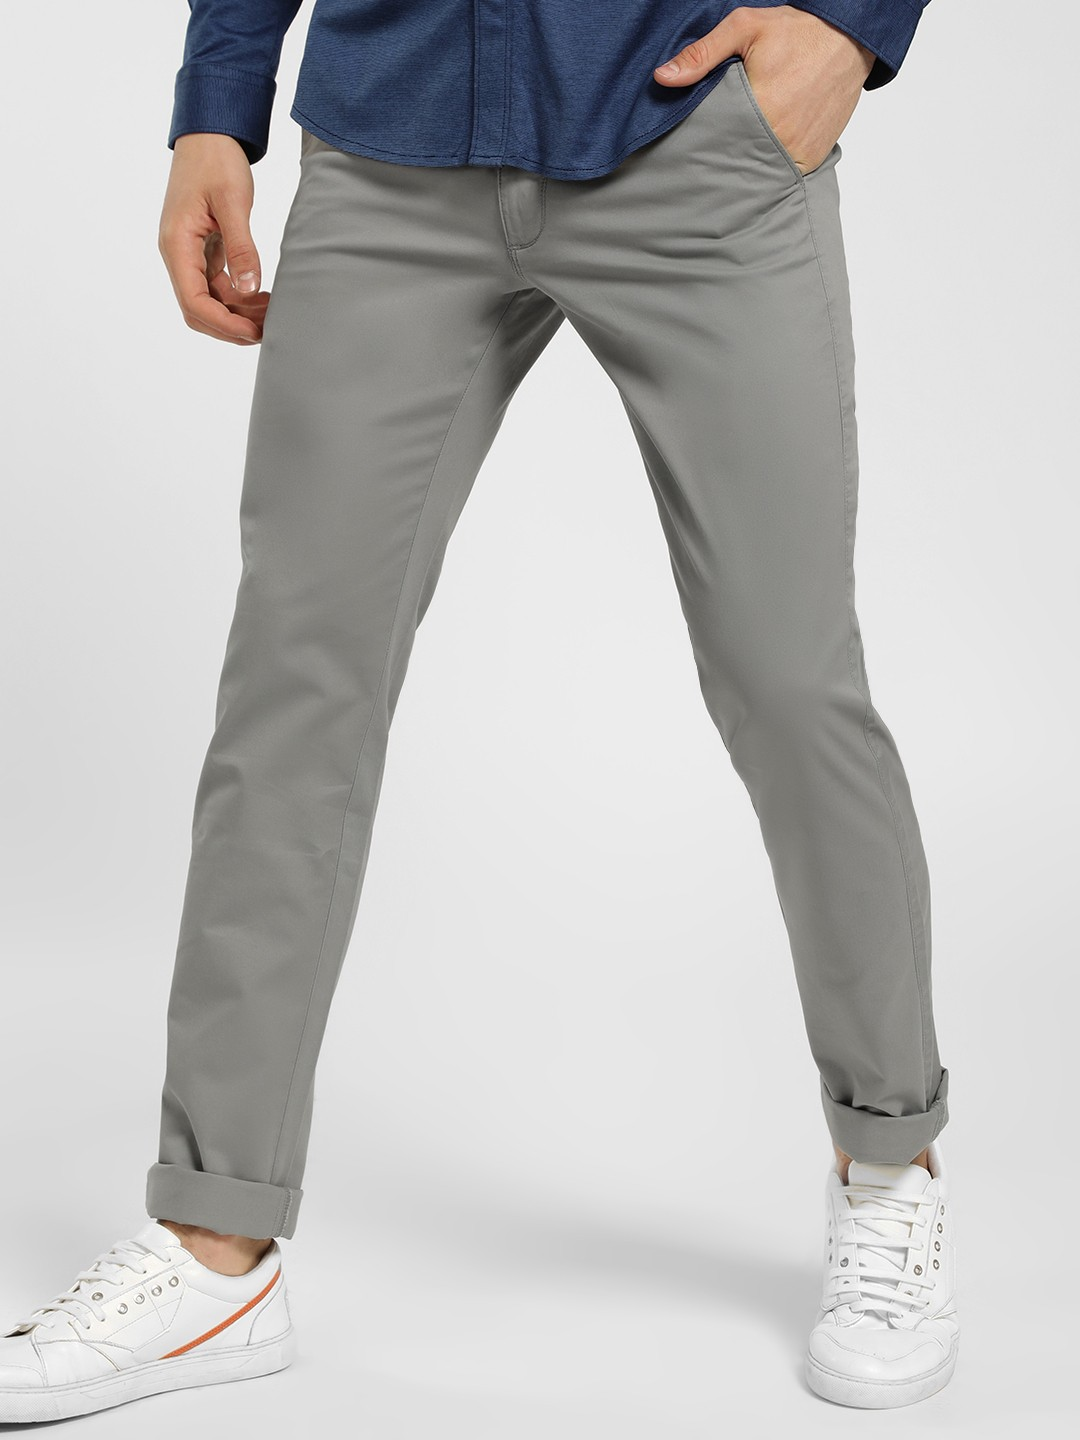 SCULLERS Grey Basic Slim Fit Trousers 1